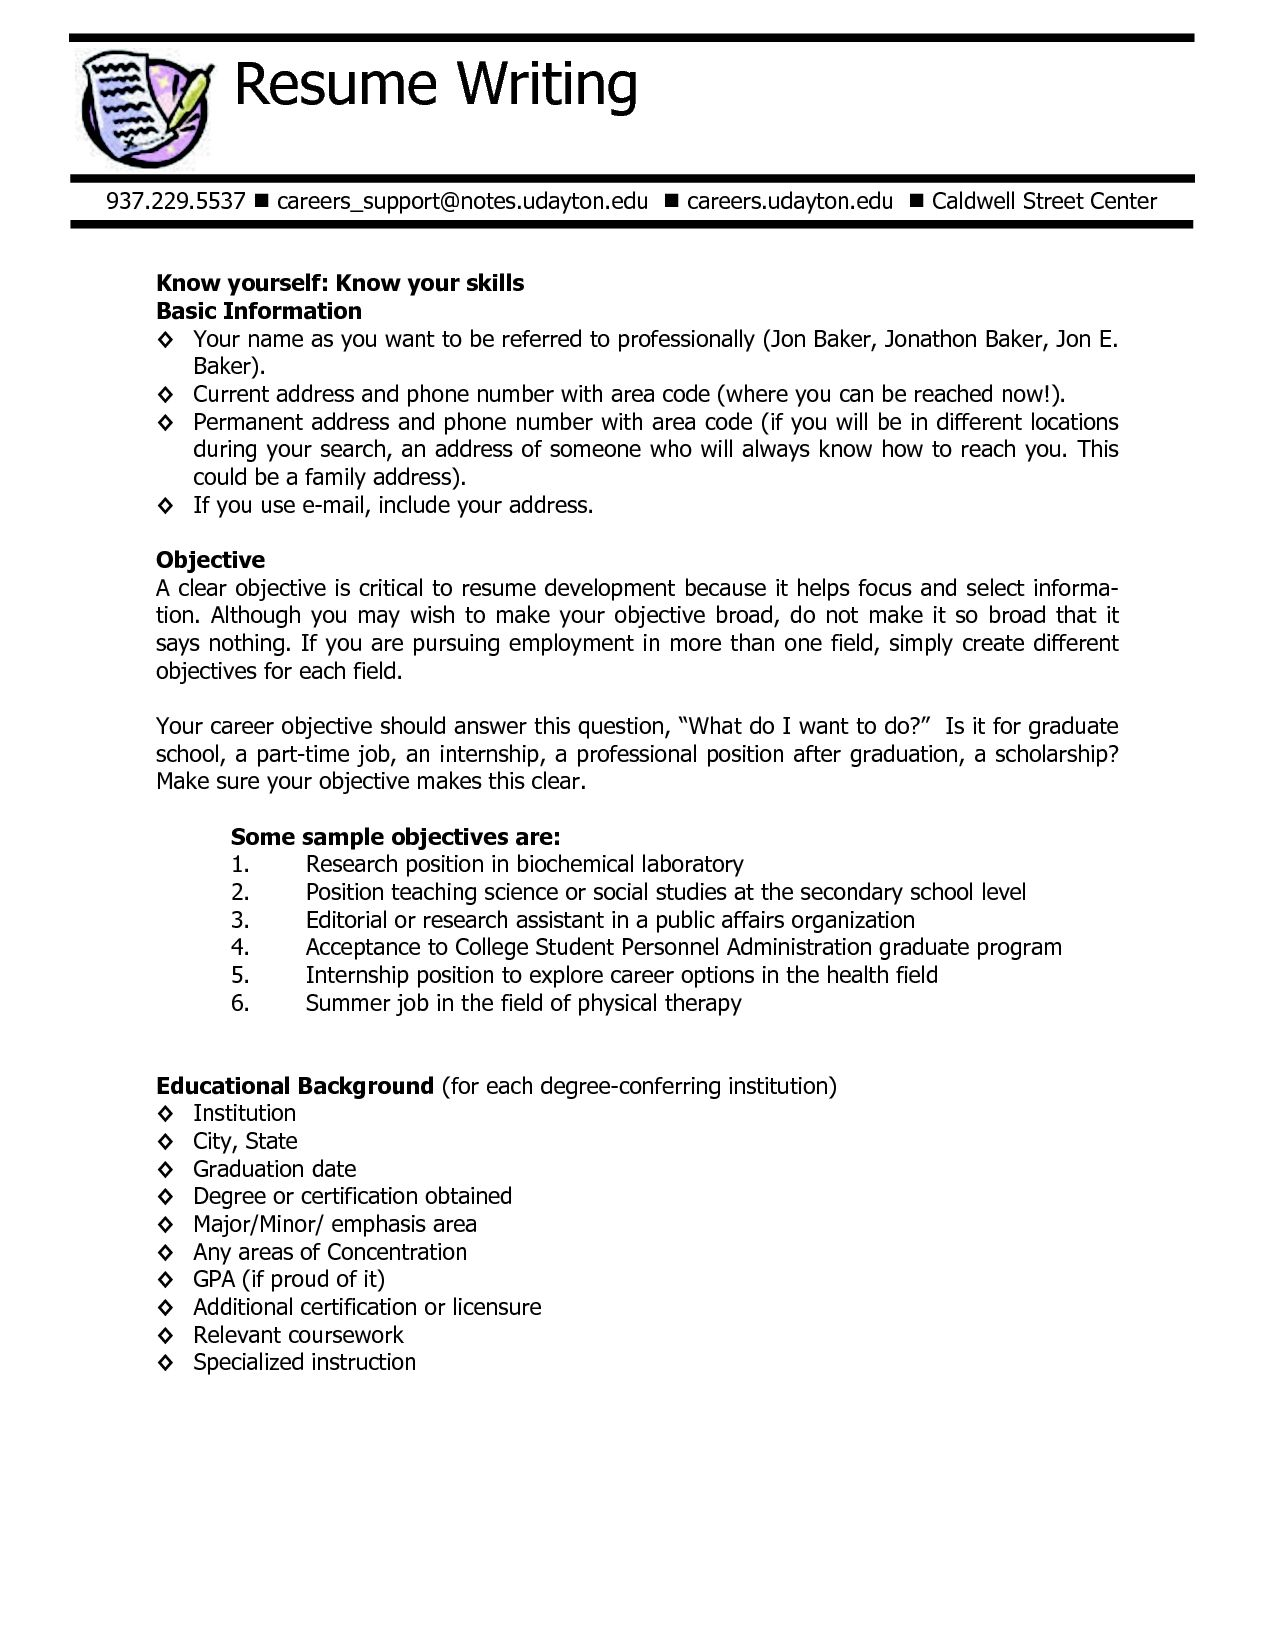 College Resume Impressive Resume Example Server Objective Examples Good For Writing Sample Design Ideas